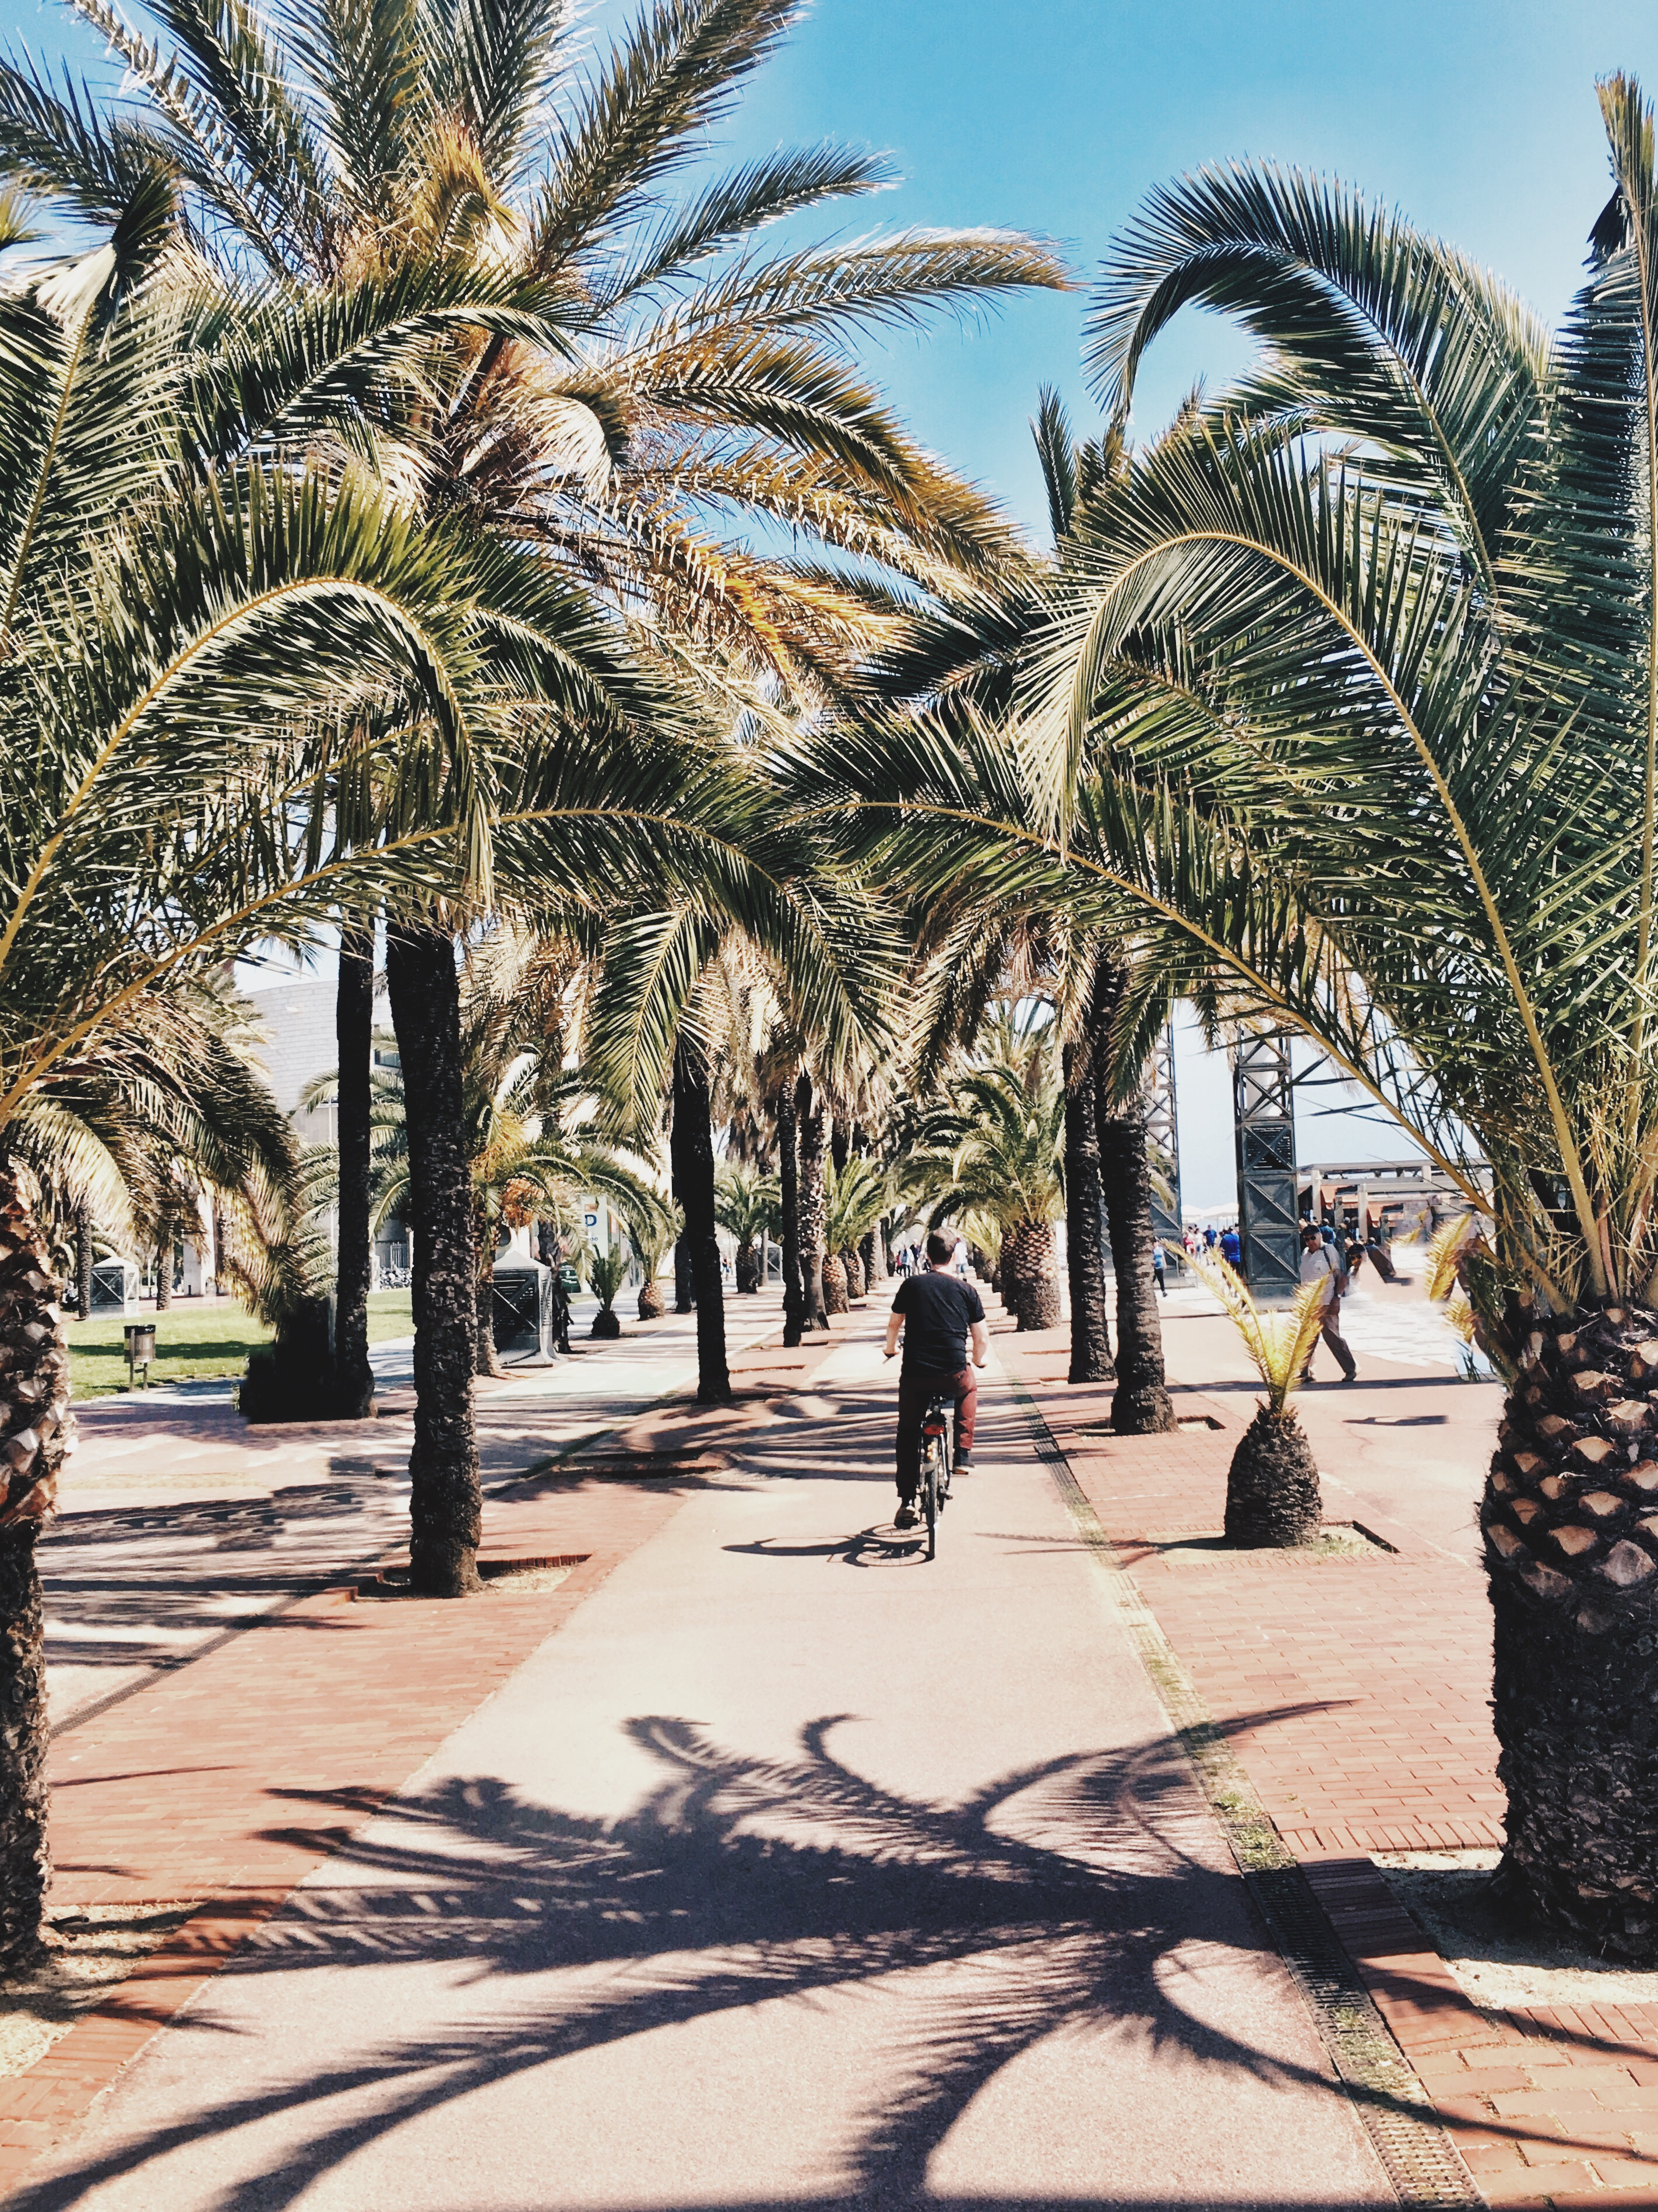 Barcelona – places we explored